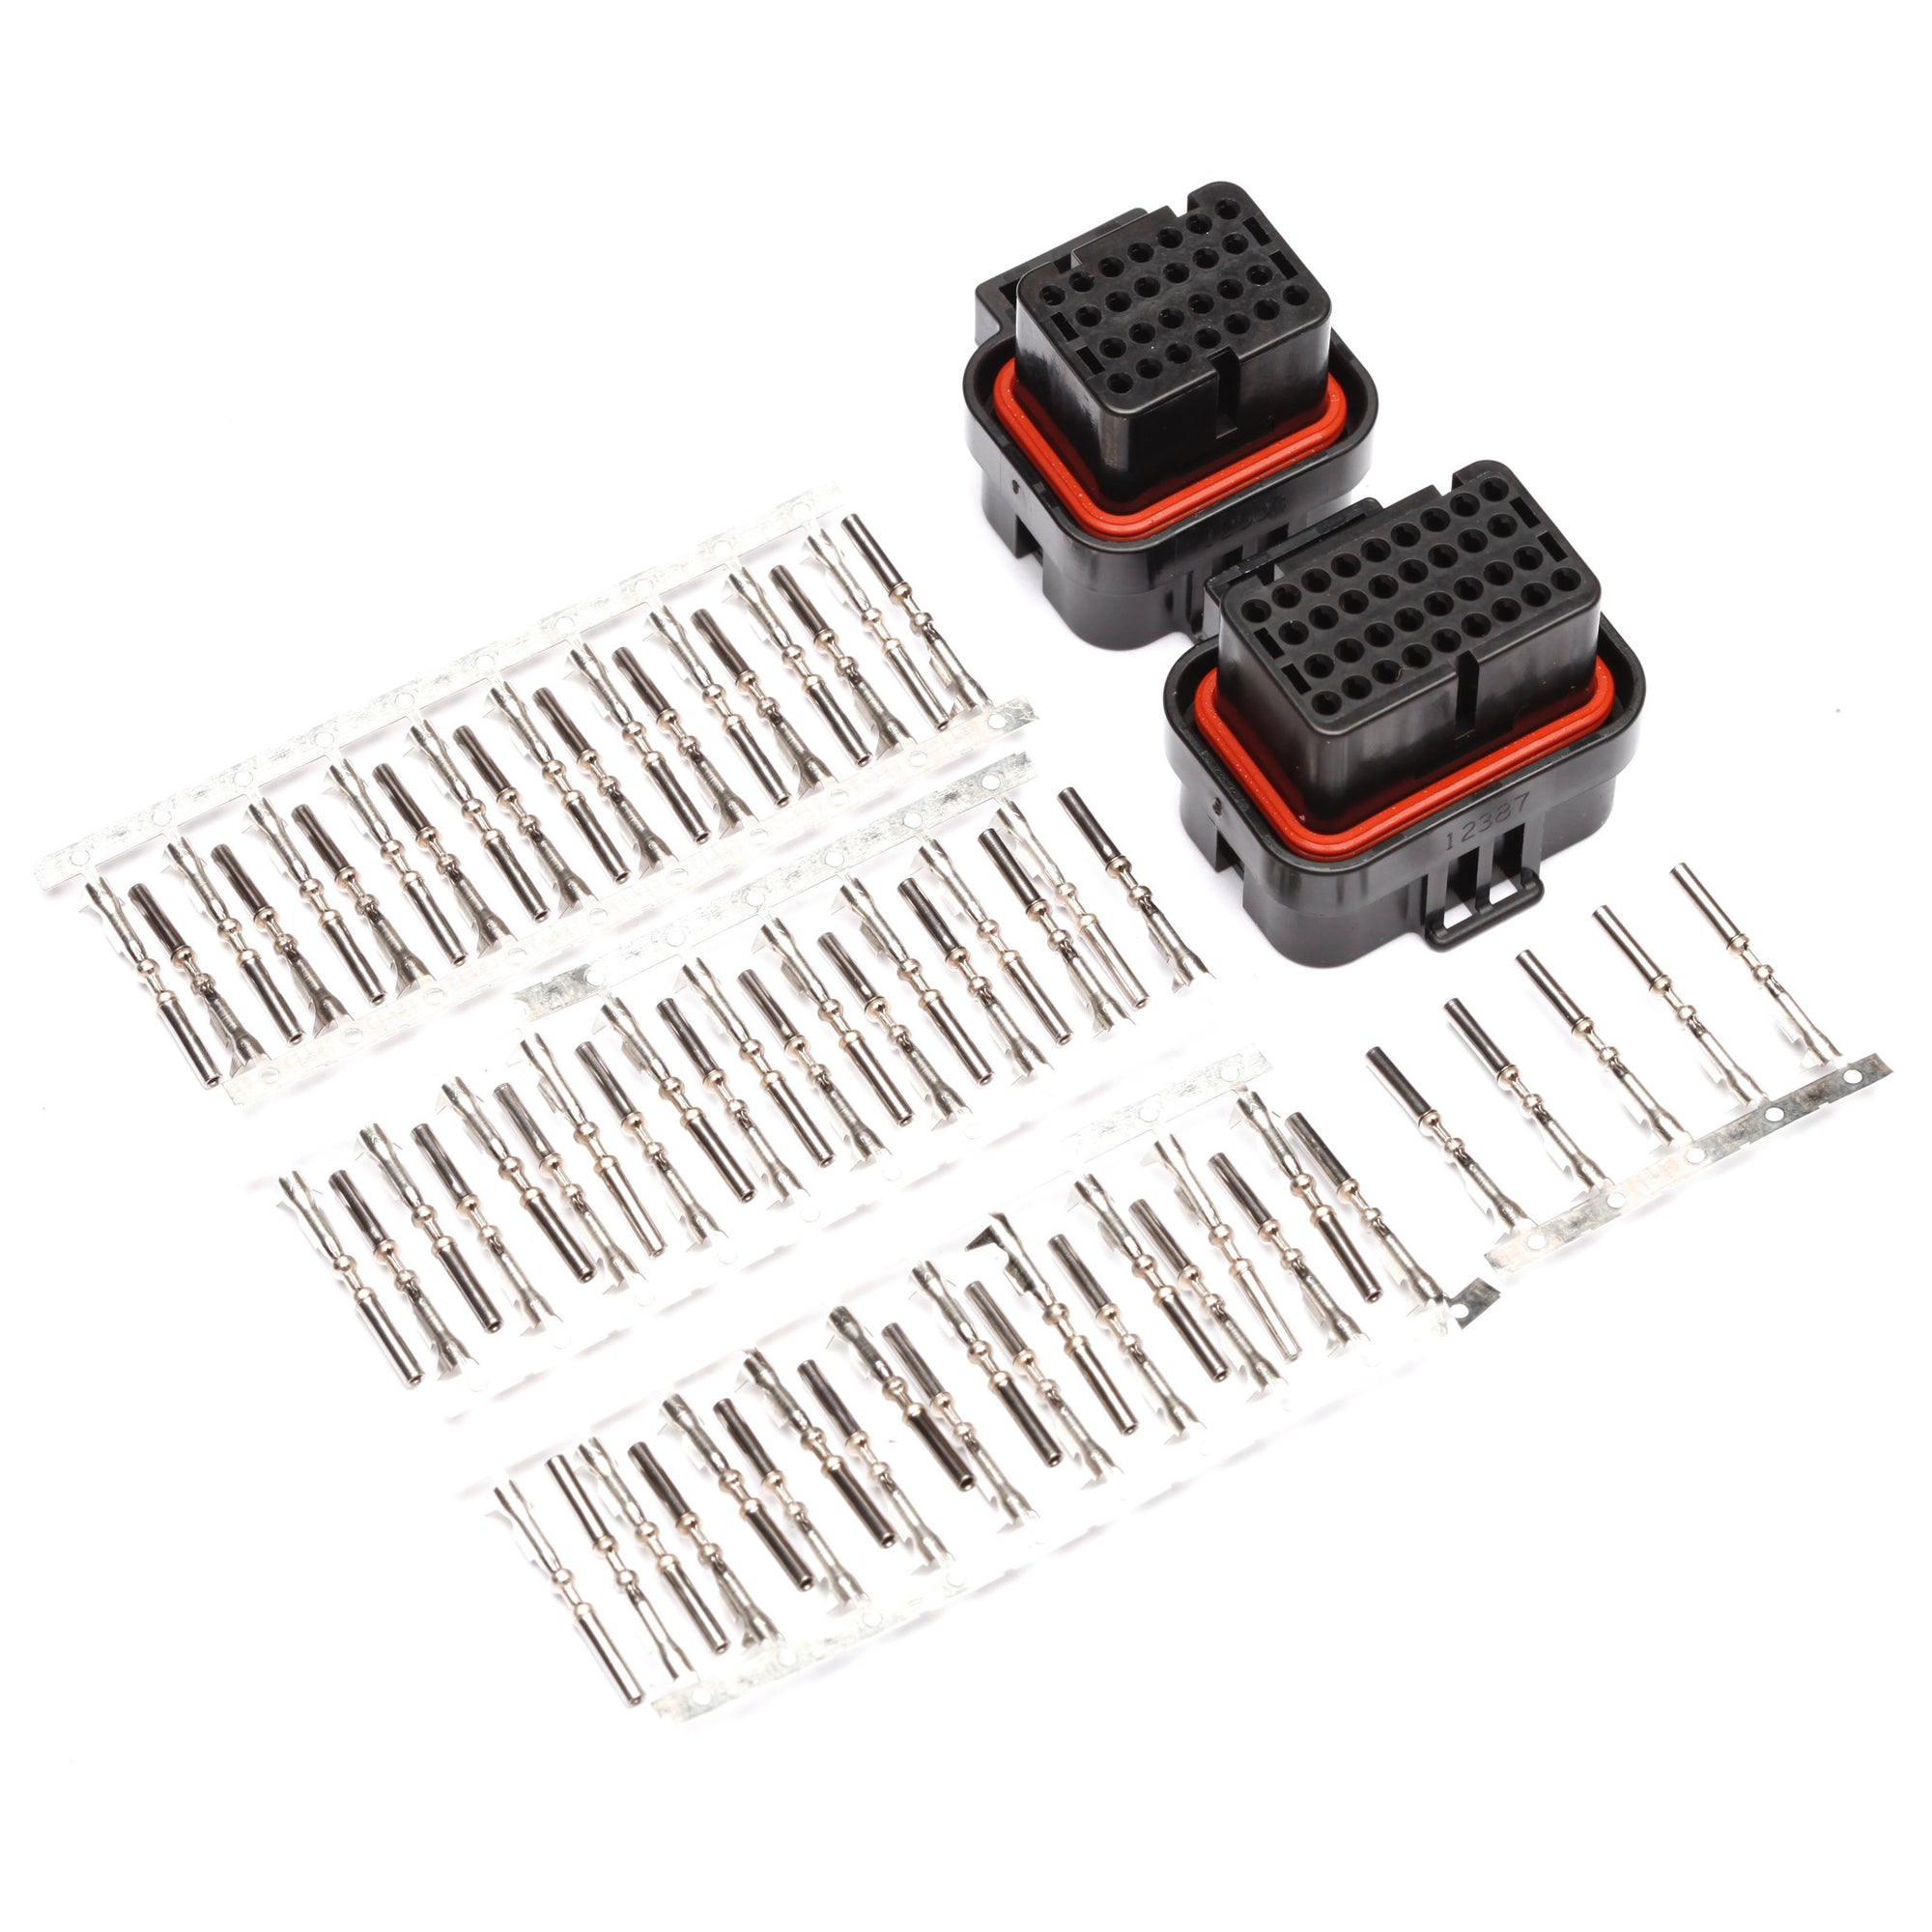 Connectors - MoTeC ECU/PDM Connector Kits